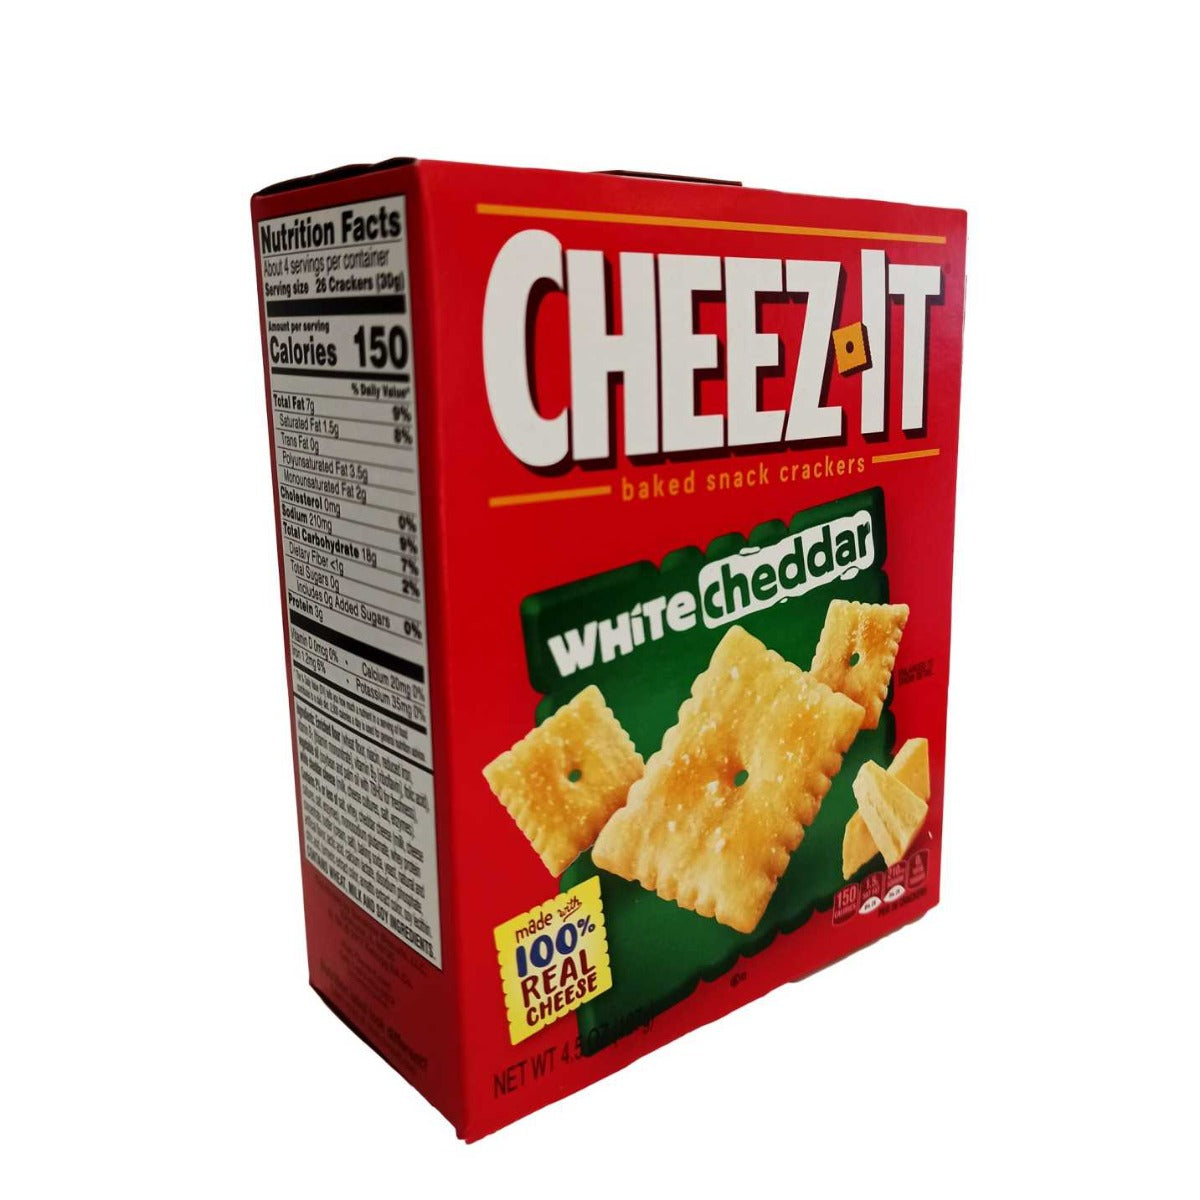 Cheez-IT קרקים מצופים צאדר